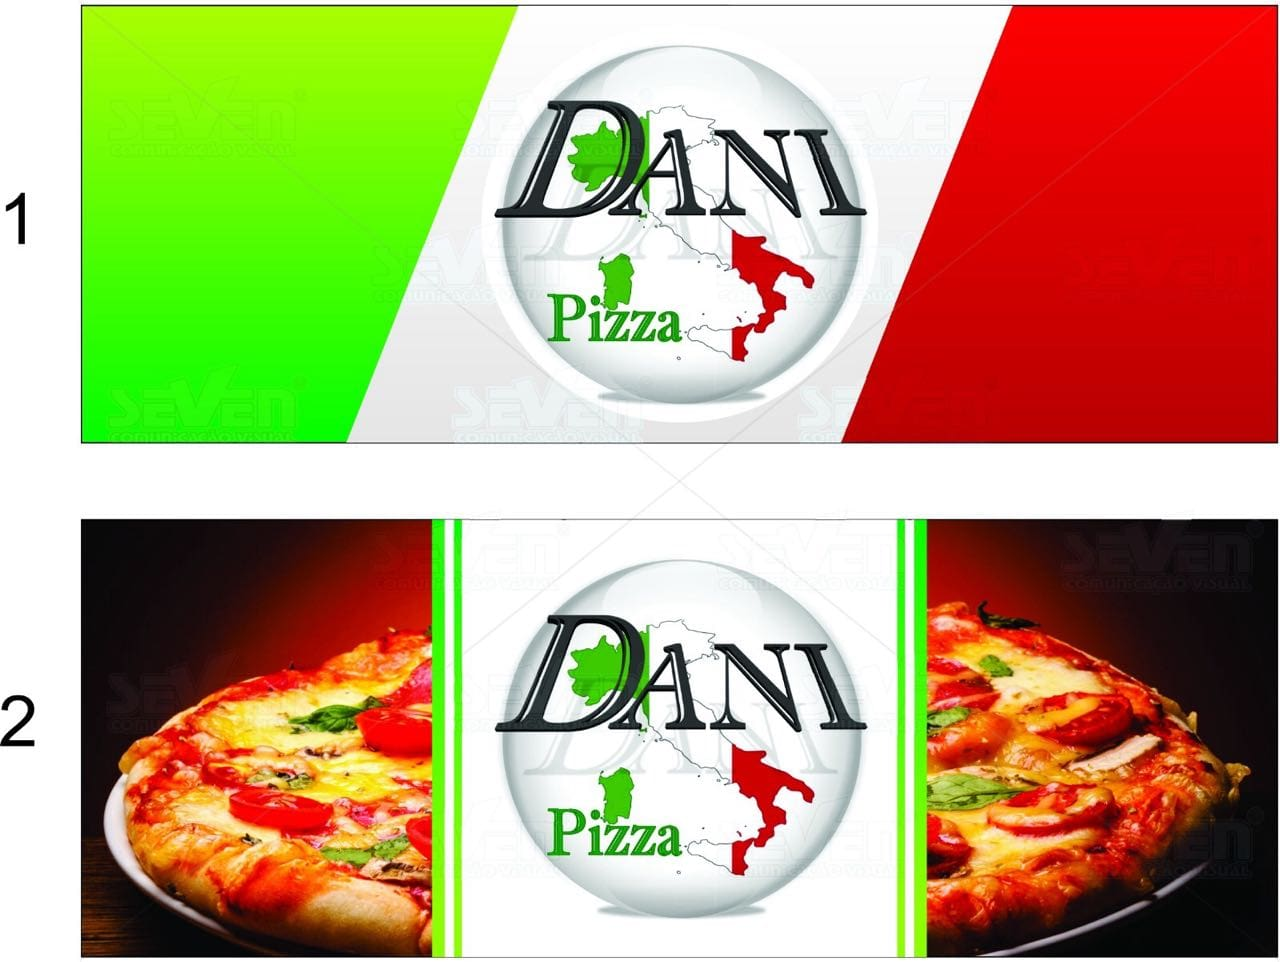 Dani Pizza Delivery